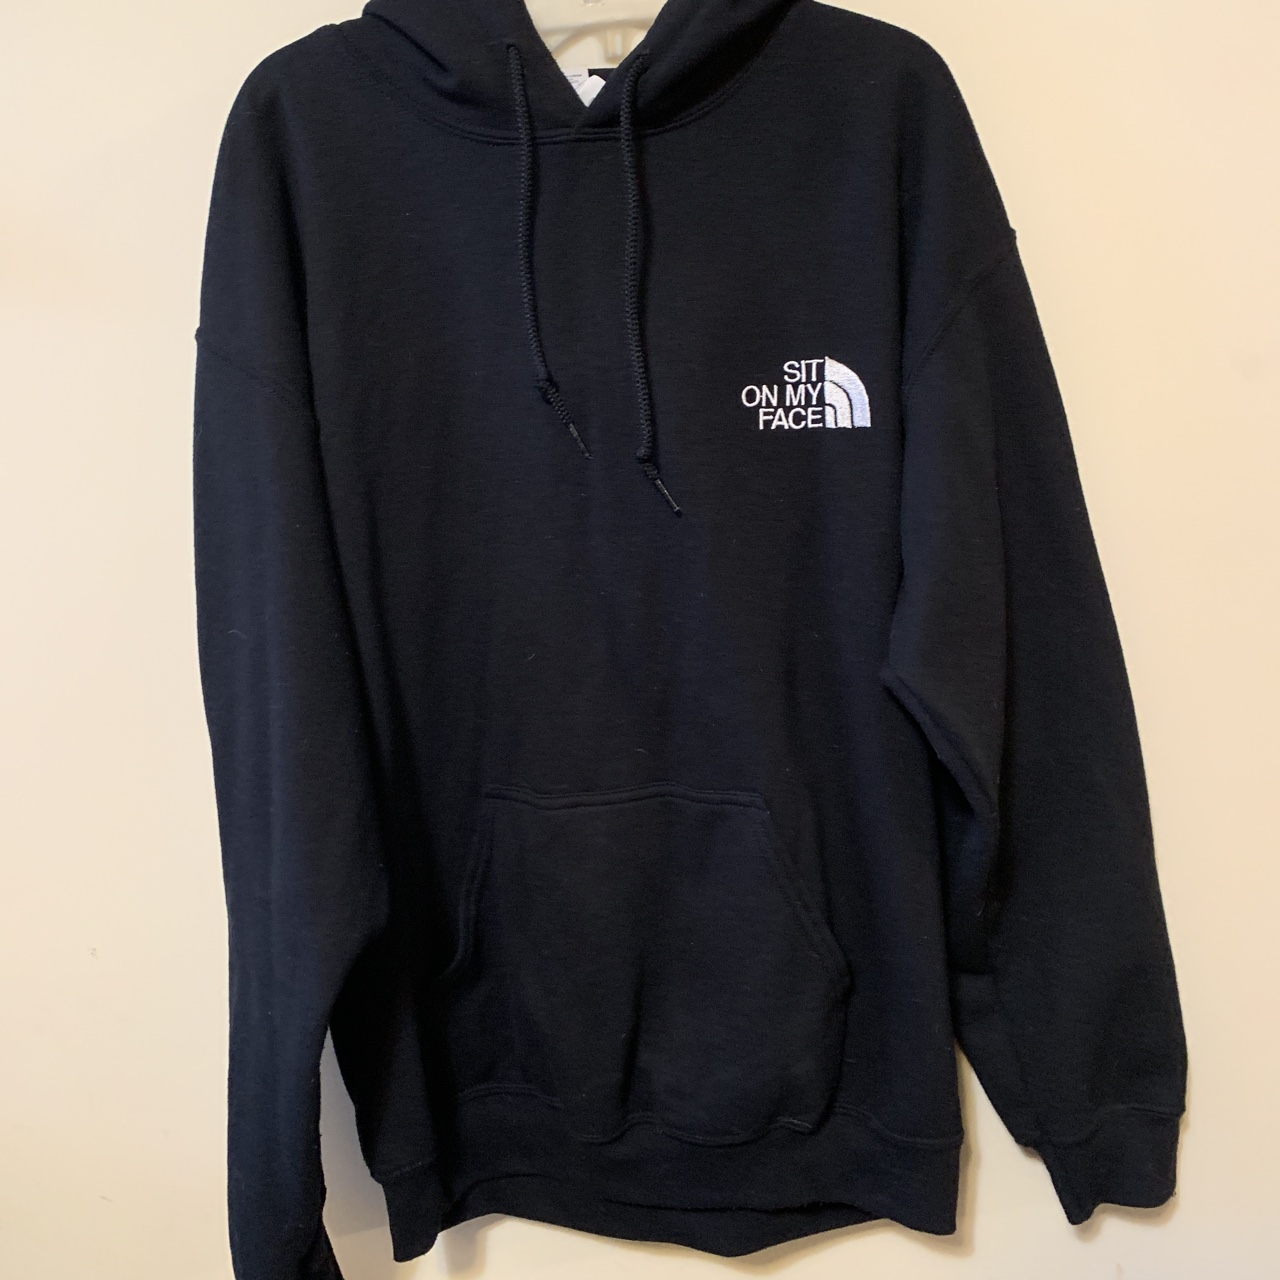 """b2a9e30c6 The North Face Like """"sit on my face"""" Hoodie! 🖤🥴 ... - Depop"""